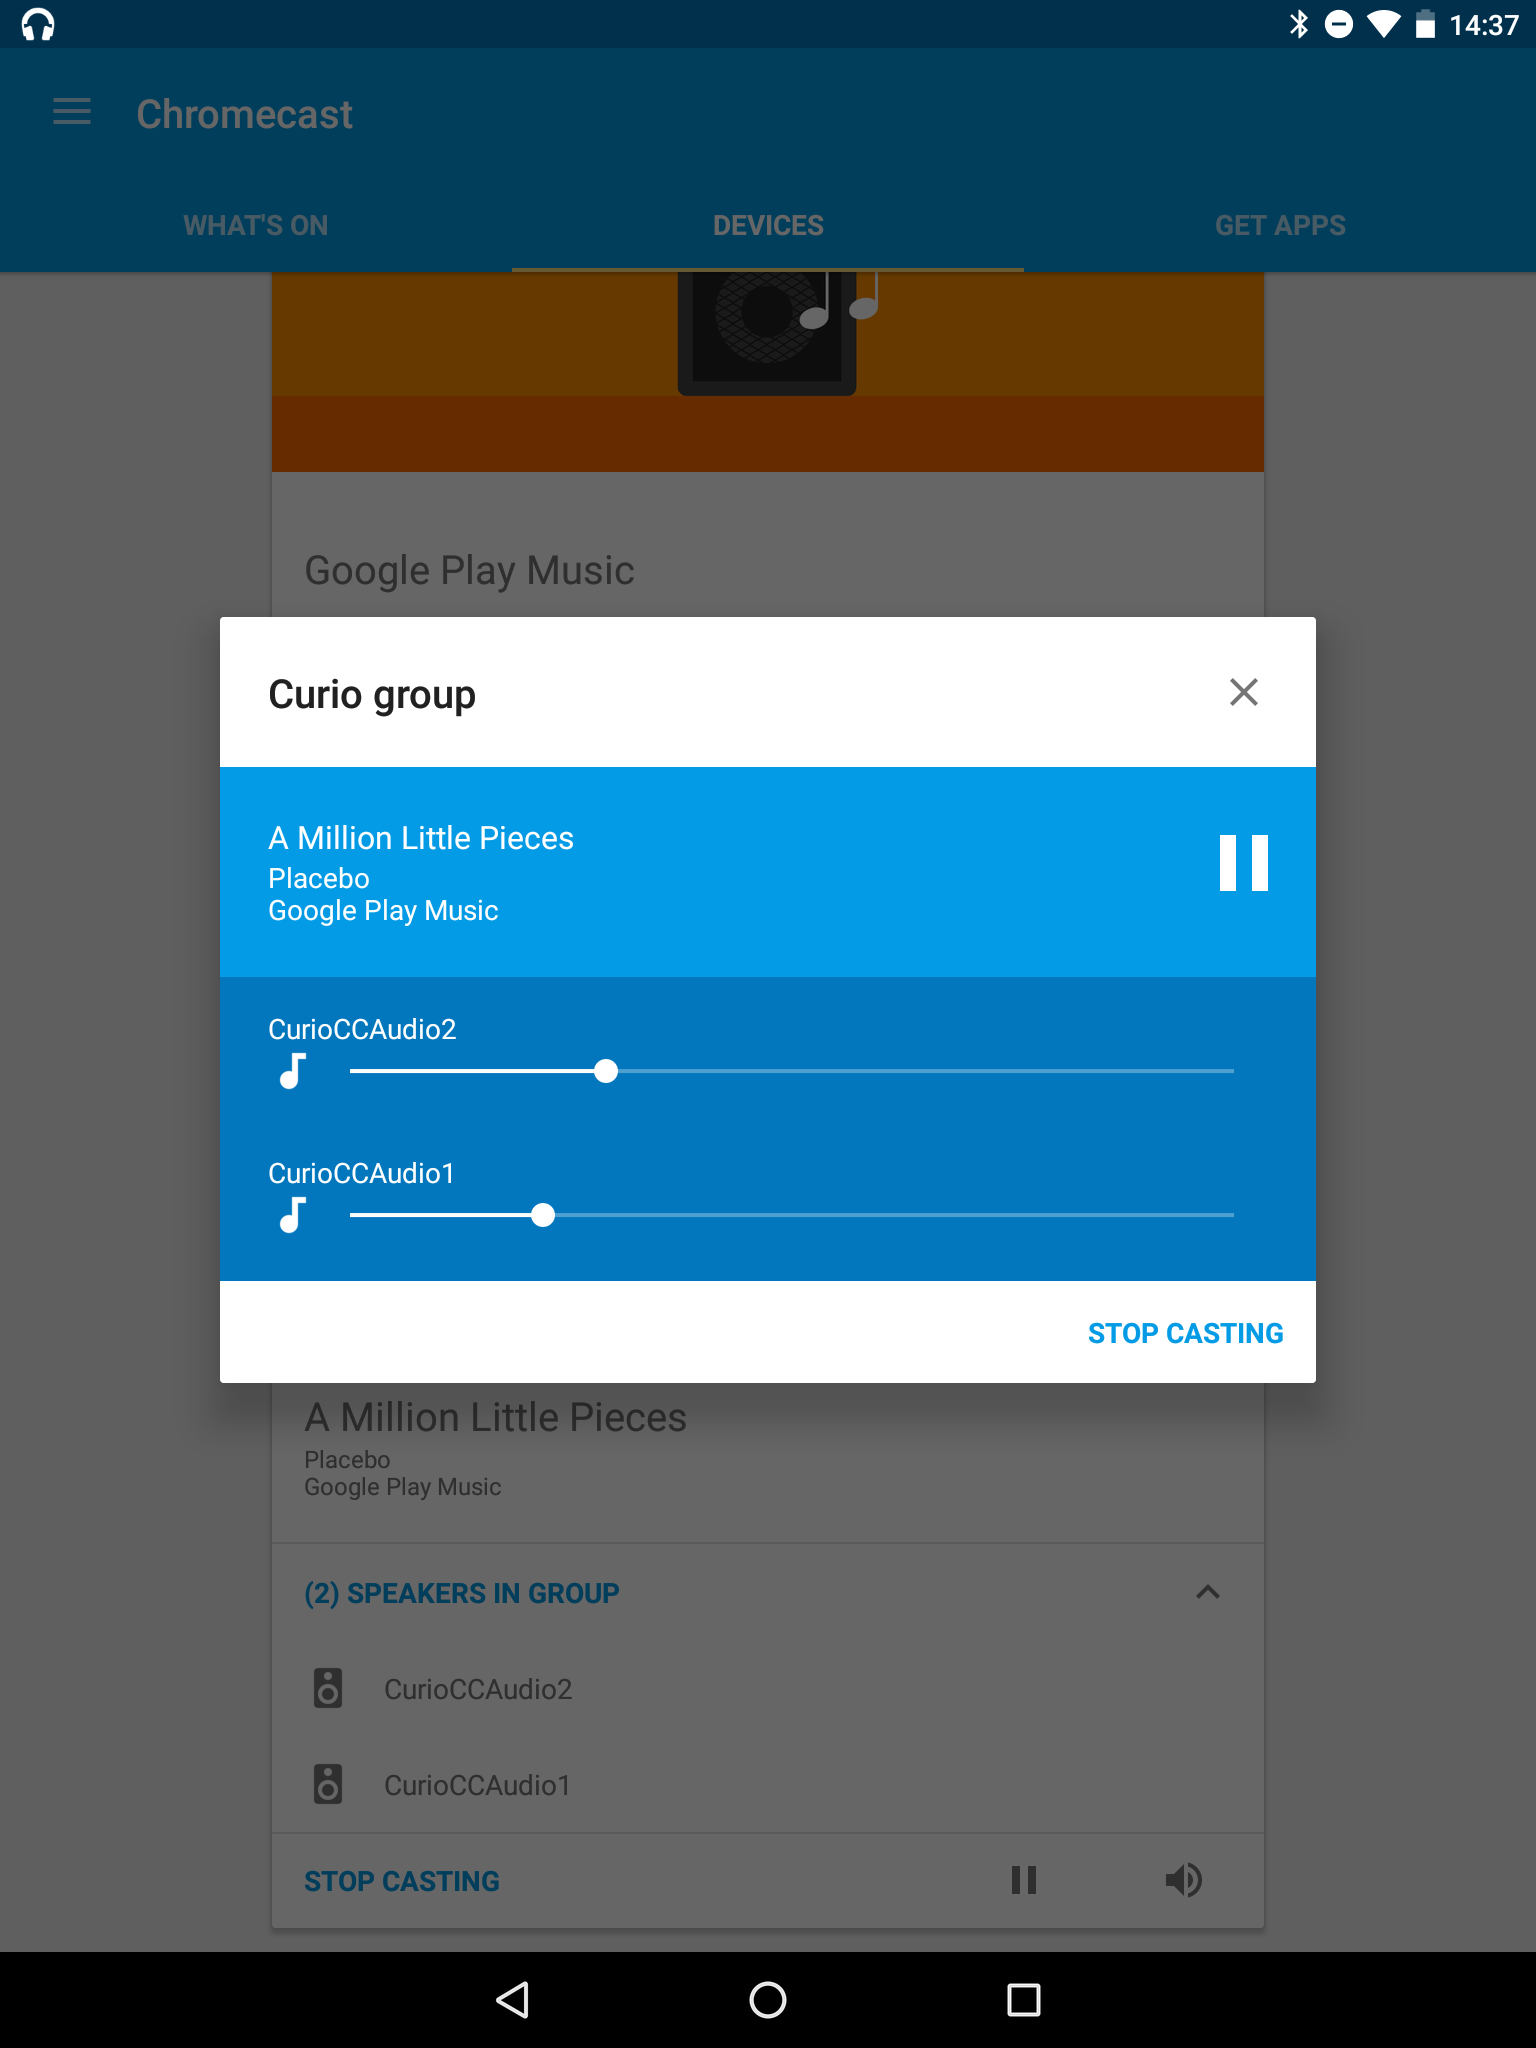 Photo: Conveniently, you can adjust the volume of each Chromecast audio in a group, which is scaled when adjusting it. In my experience however, the volume wasn't matched anymore after adjusting the general volume.